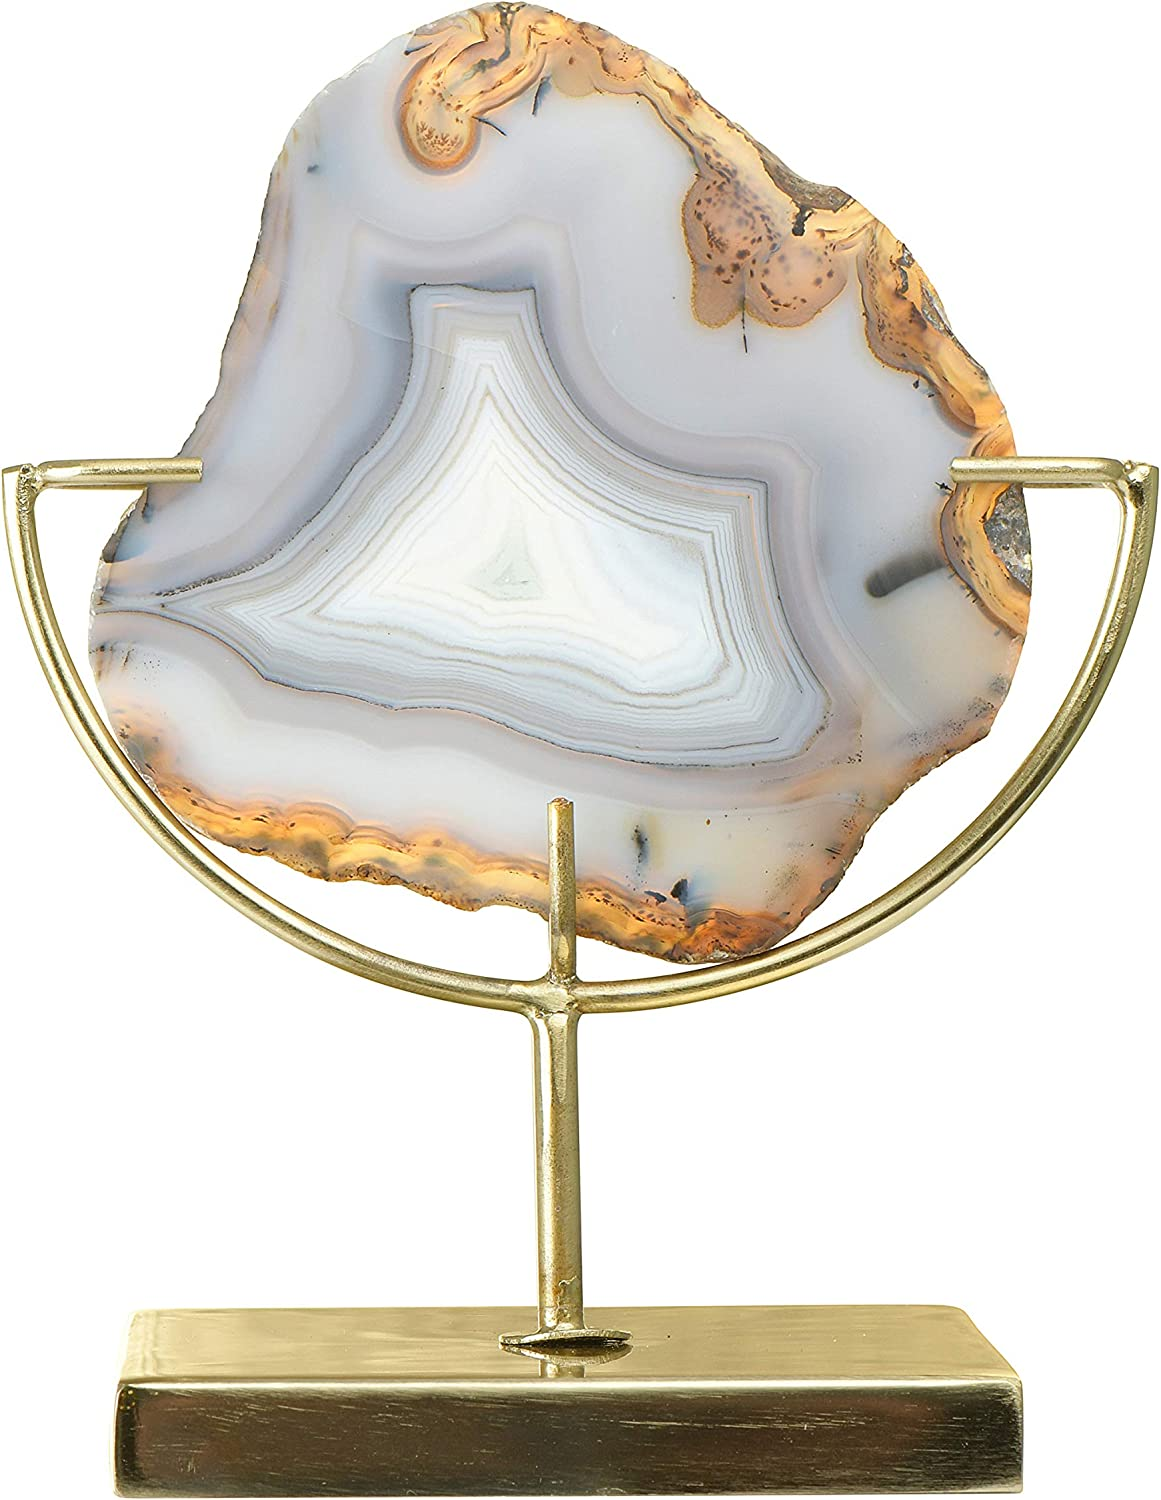 "Main + Mesa Agate Geode Shelf Crystal on Metal Stand, 6.75"" x 4"", Natural Brown"